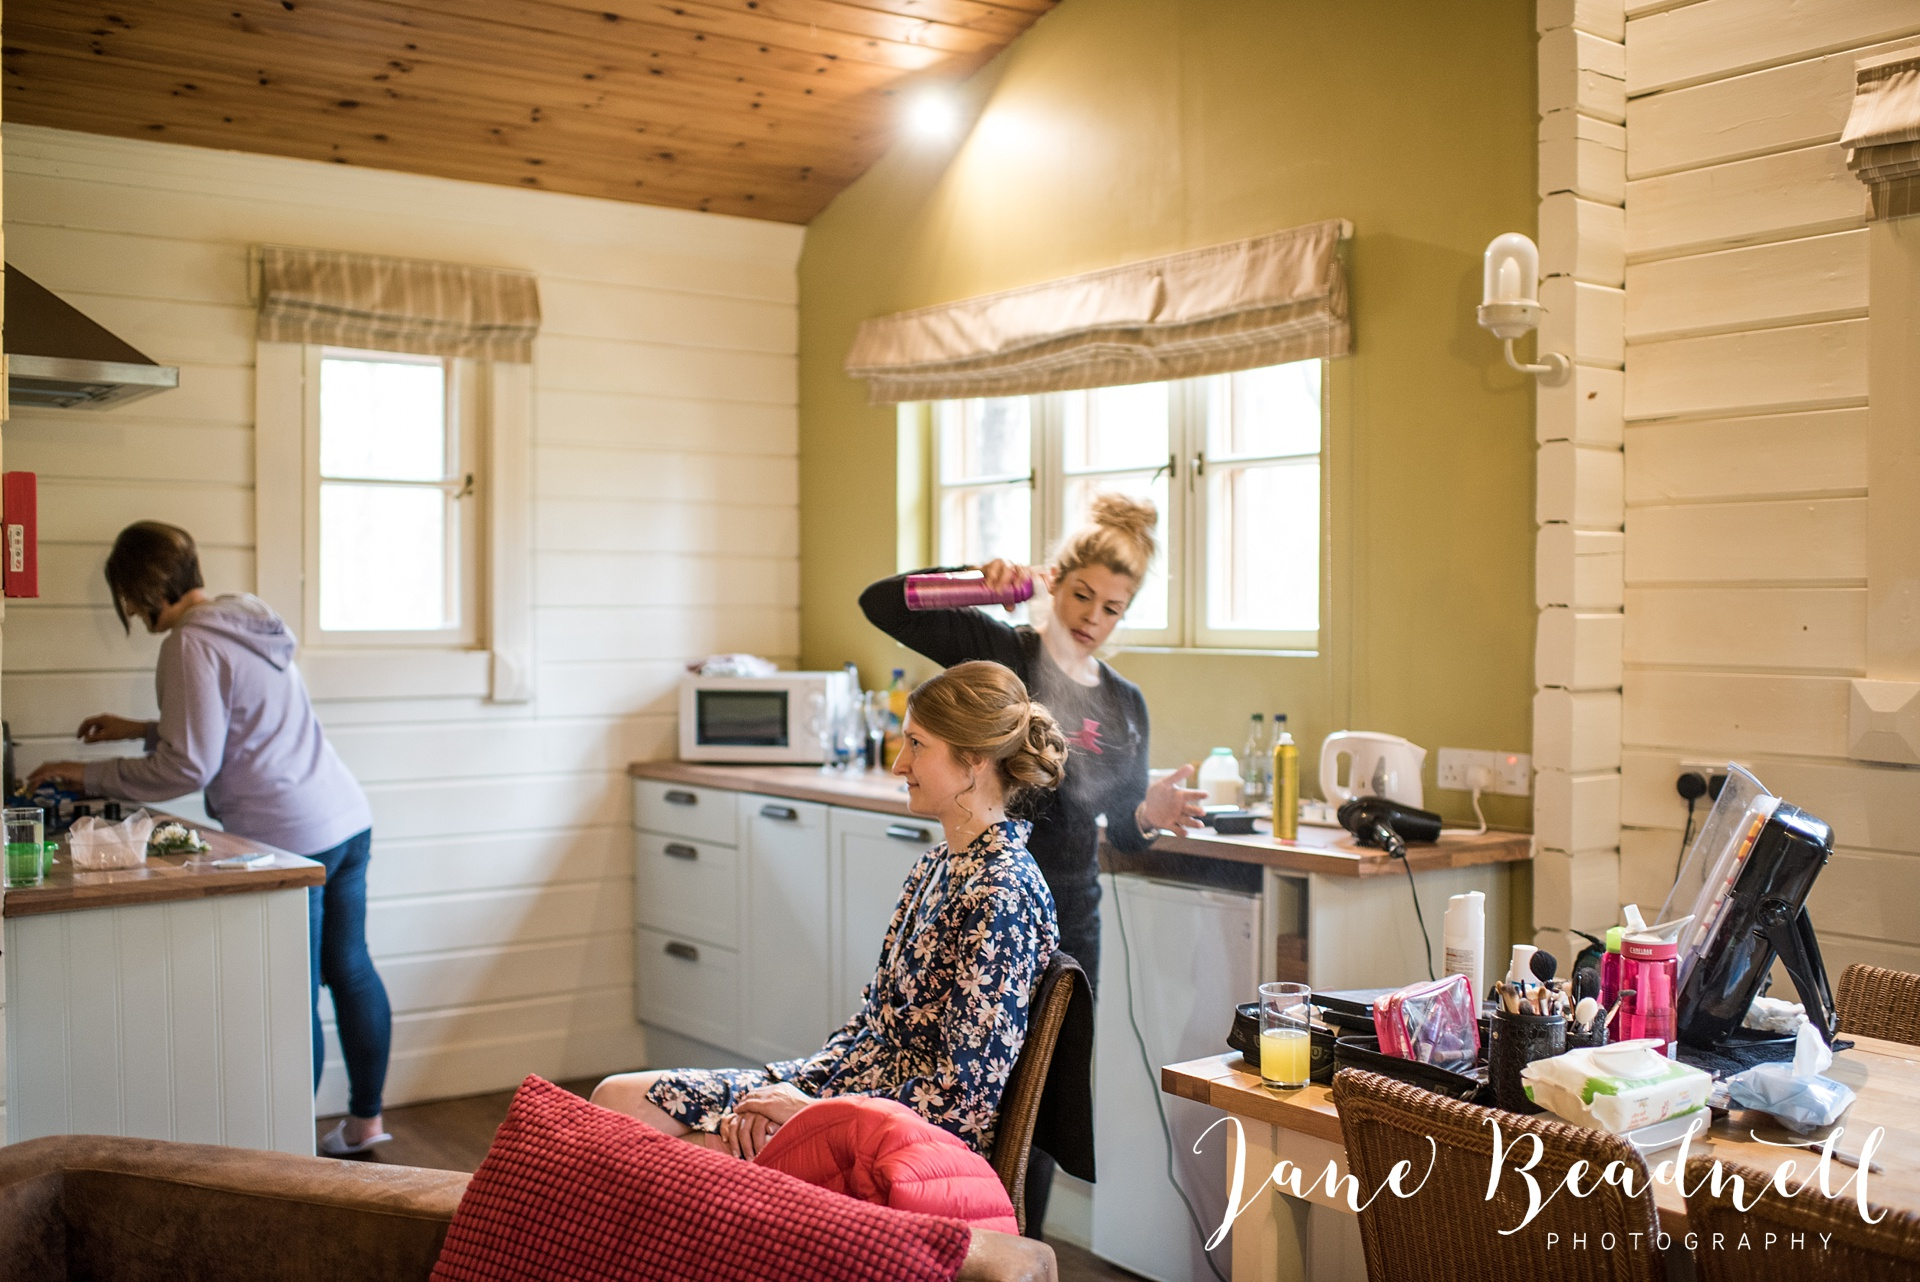 Otley Chevin Lodge wedding photography by Jane Beadnell Photography Leeds_0010